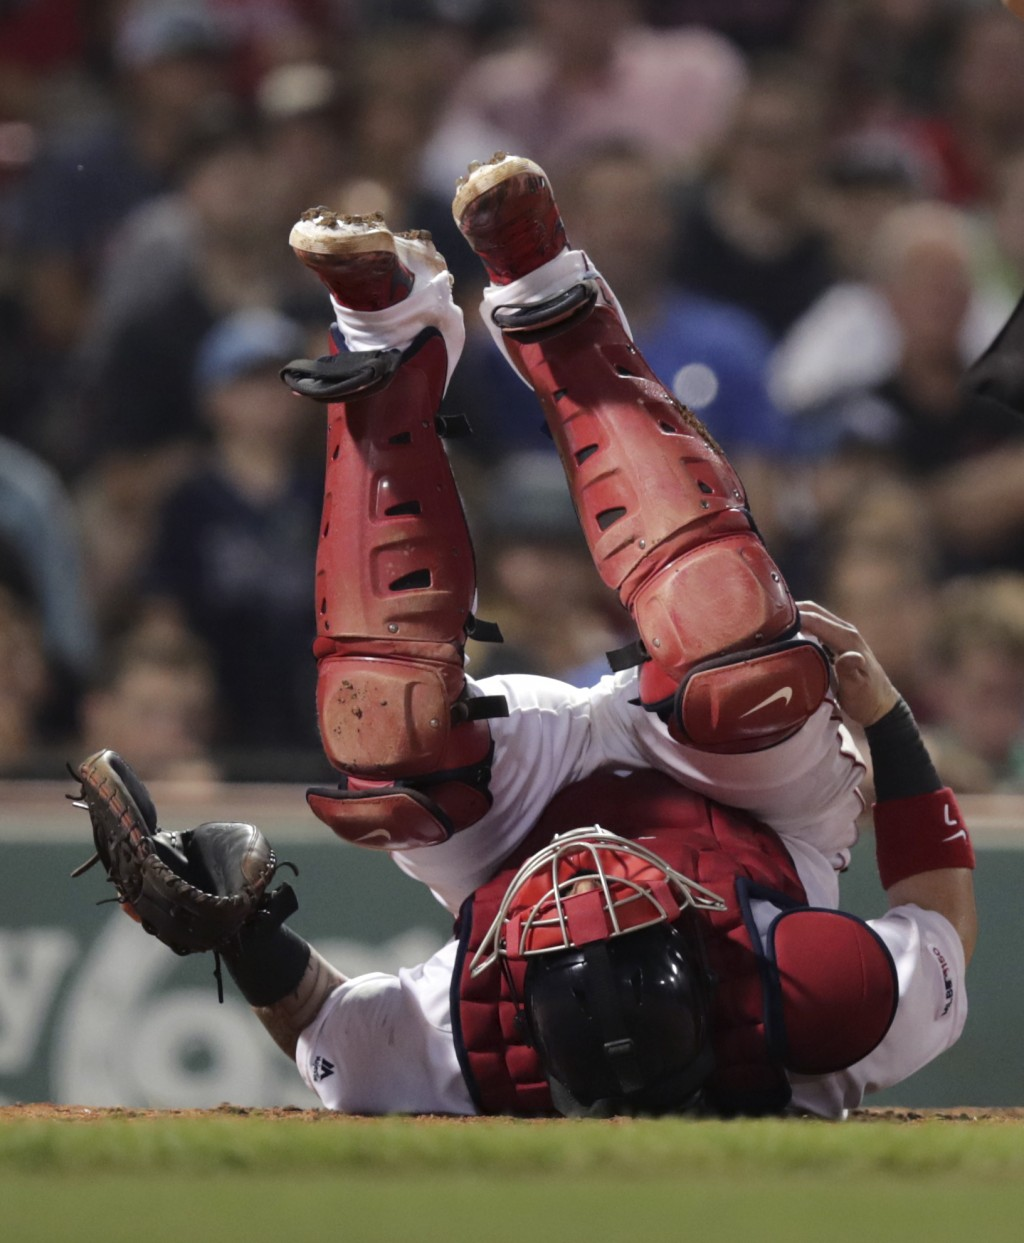 Boston Red Sox catcher Christian Vazquez grabs his knee as he rolls on his back after getting hit with a pitch during the ninth inning of the team's b...